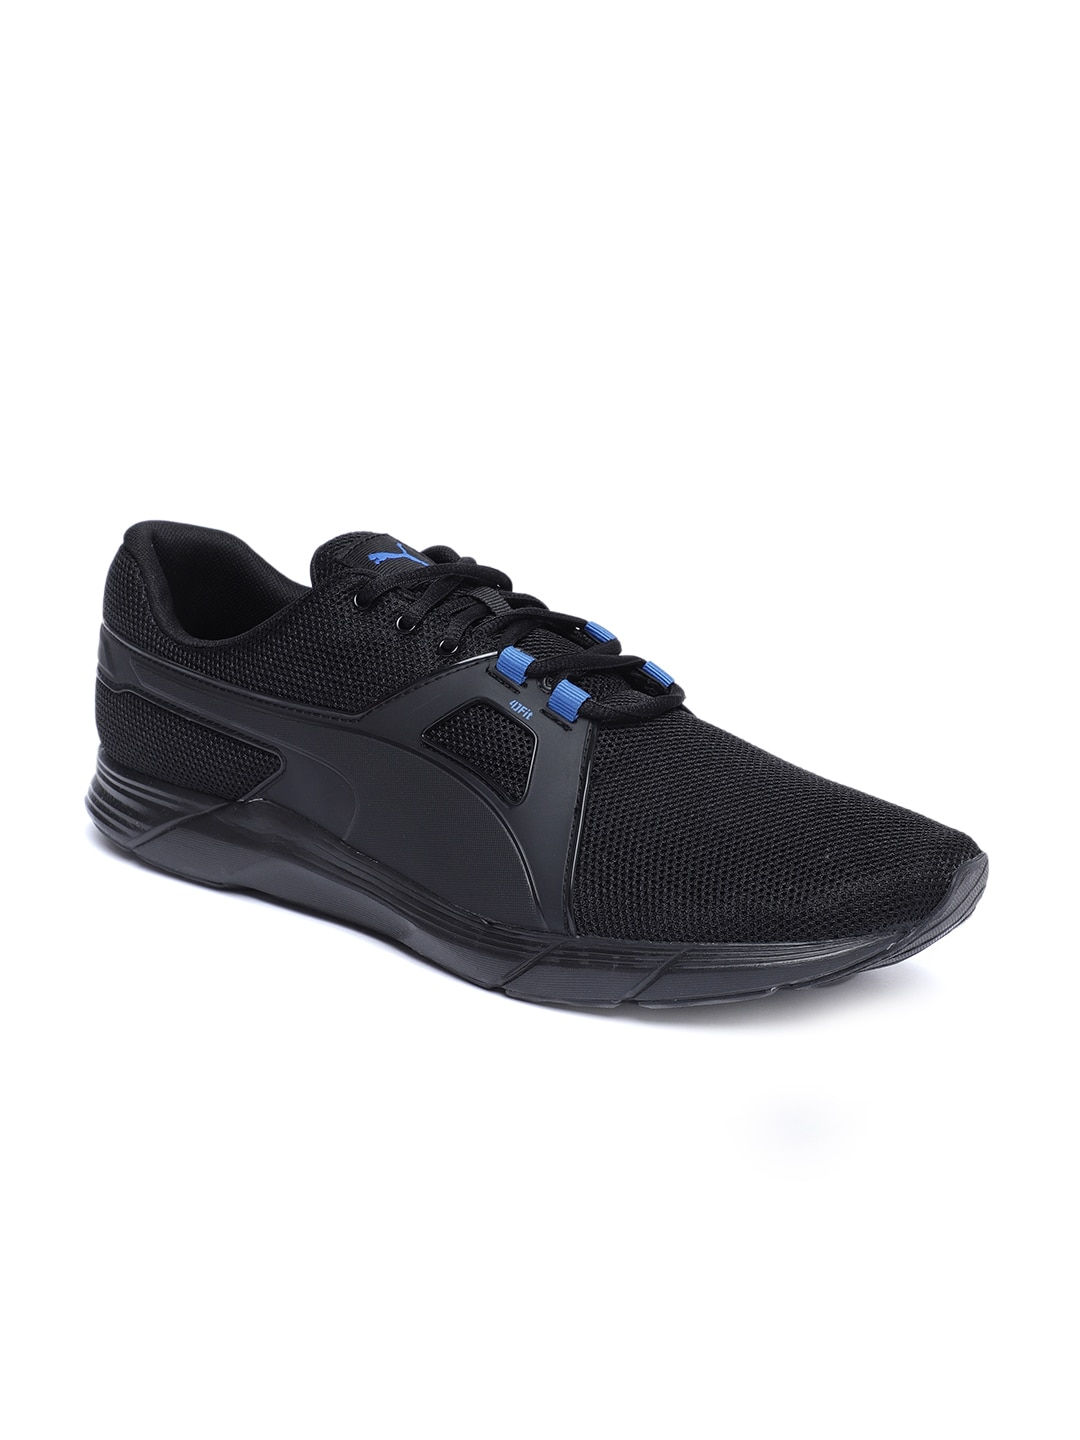 01fa8547a9a Puma Shoes - Buy Puma Shoes for Men   Women Online in India